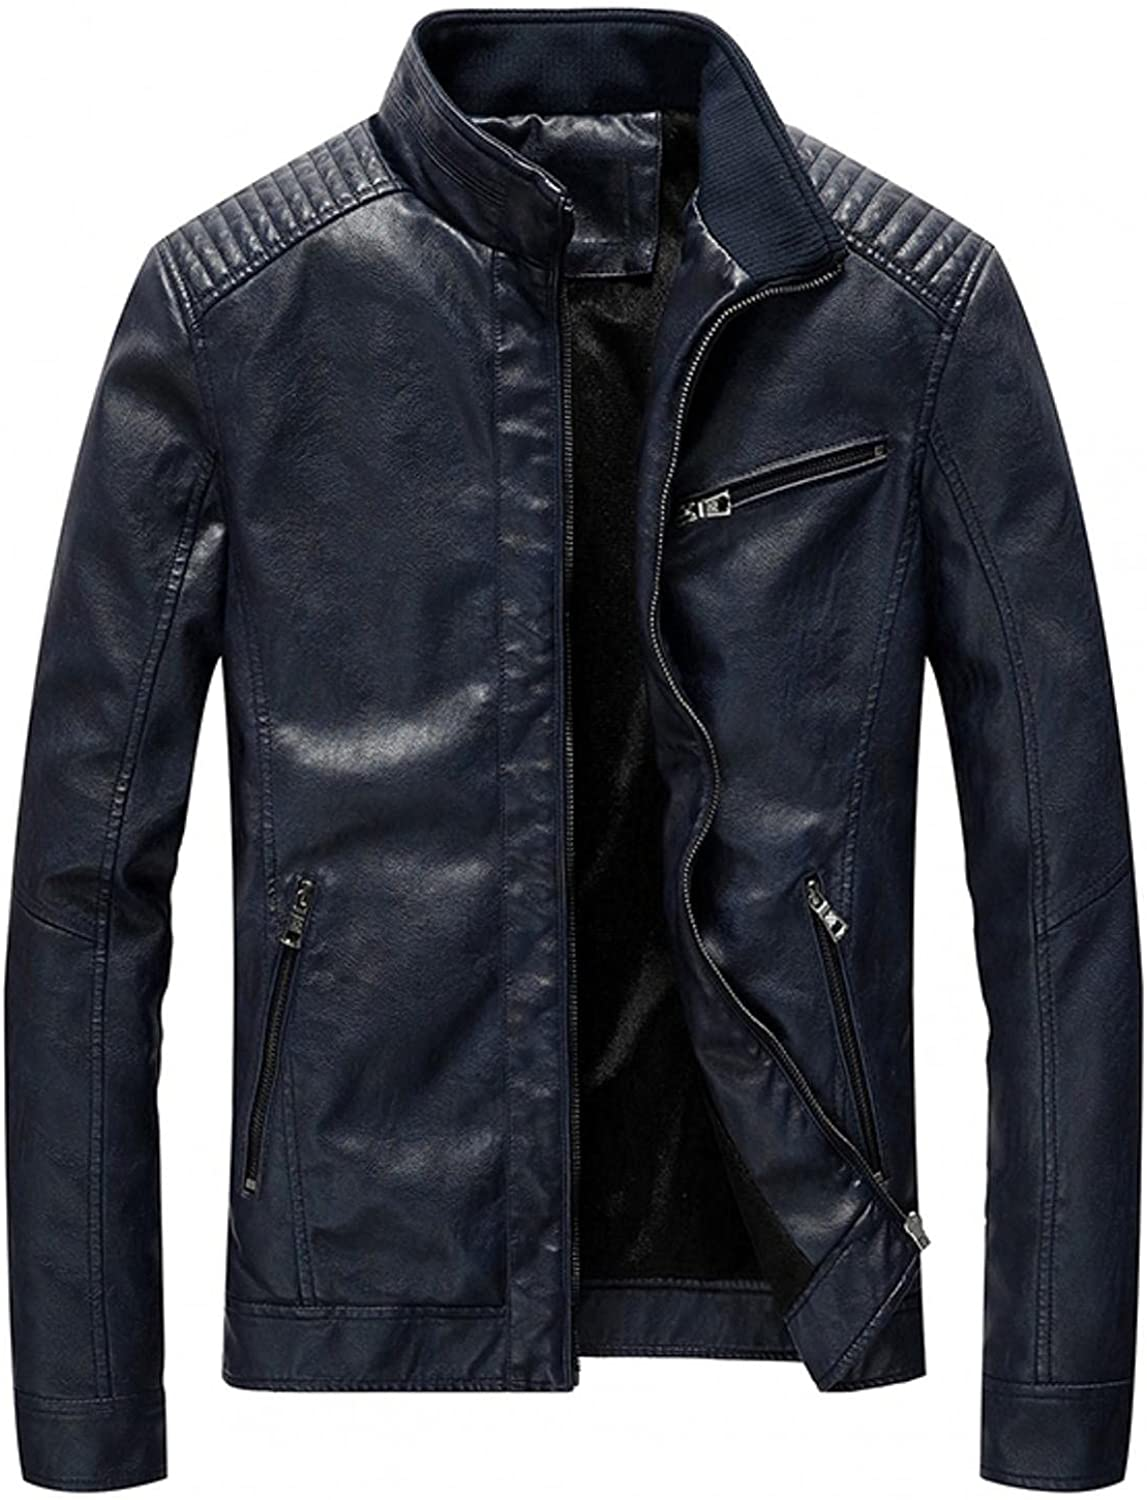 Men's Vintage Stand Collar Pu Leather Jacket Slim Fit Zip-Up Biker Motorcycle Lightweight Faux Leather Outwear